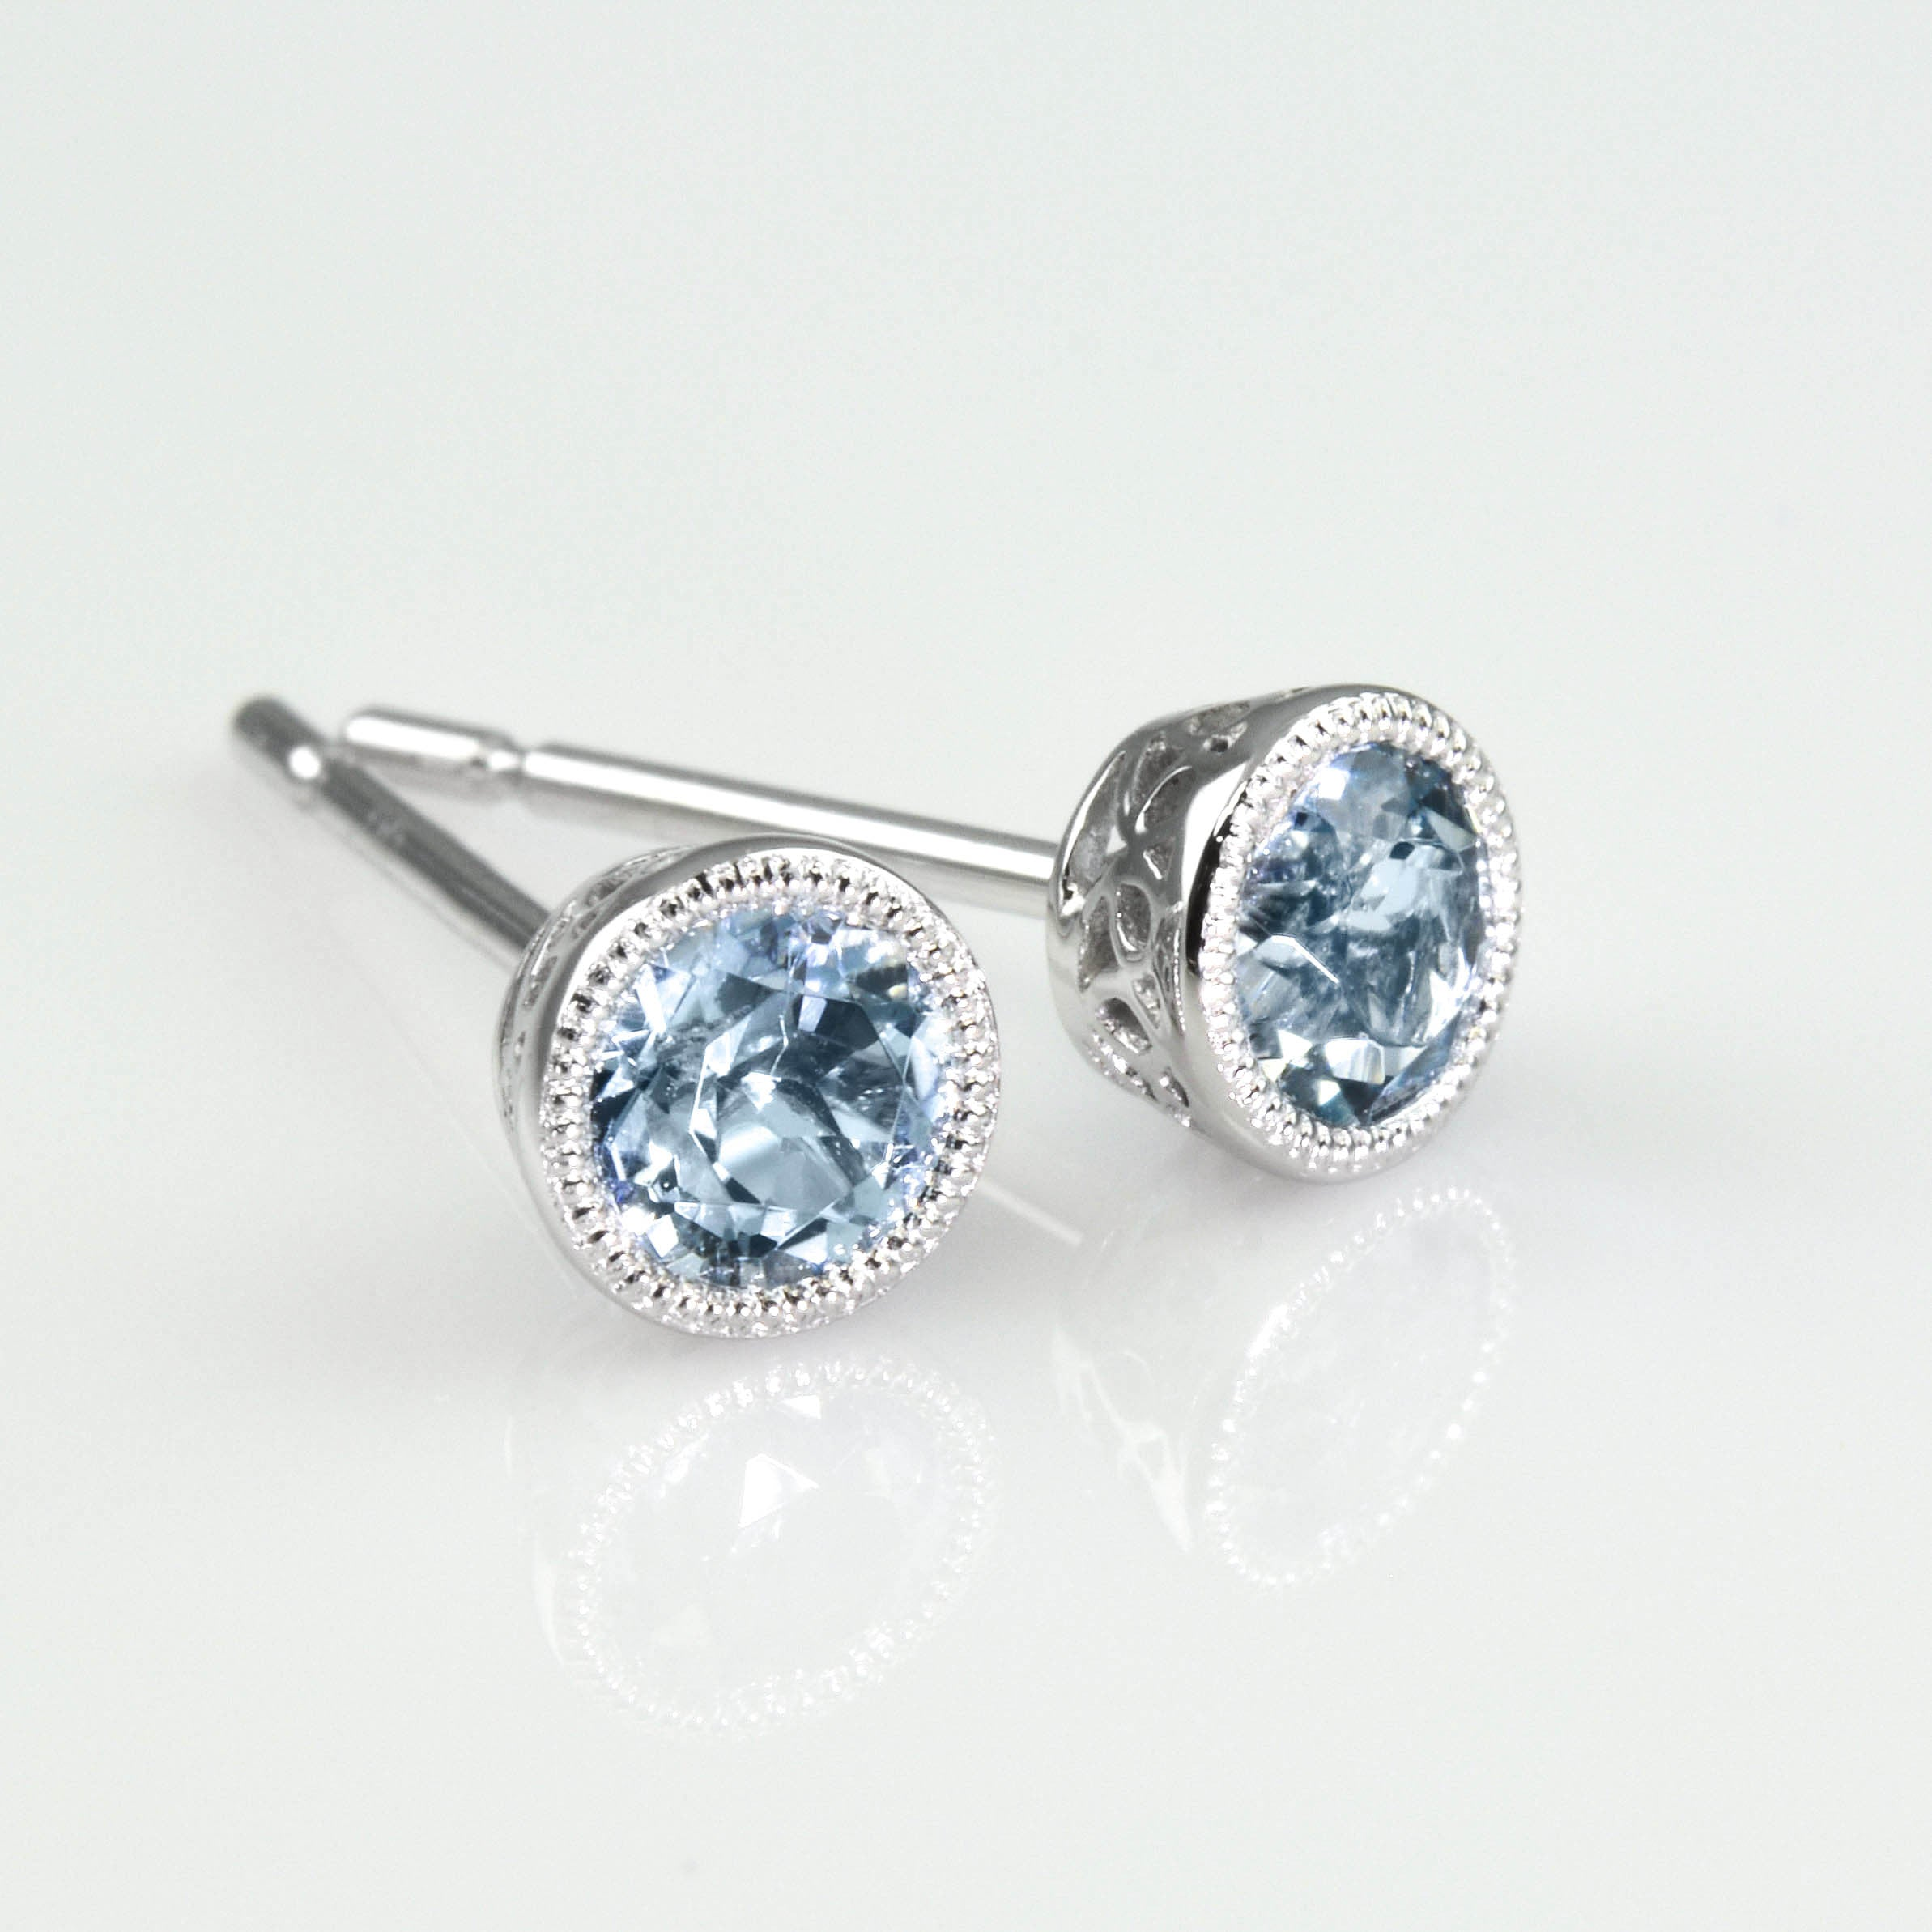 aquamarine marine london raindrop earrings jewellery white product gold road aqua stud